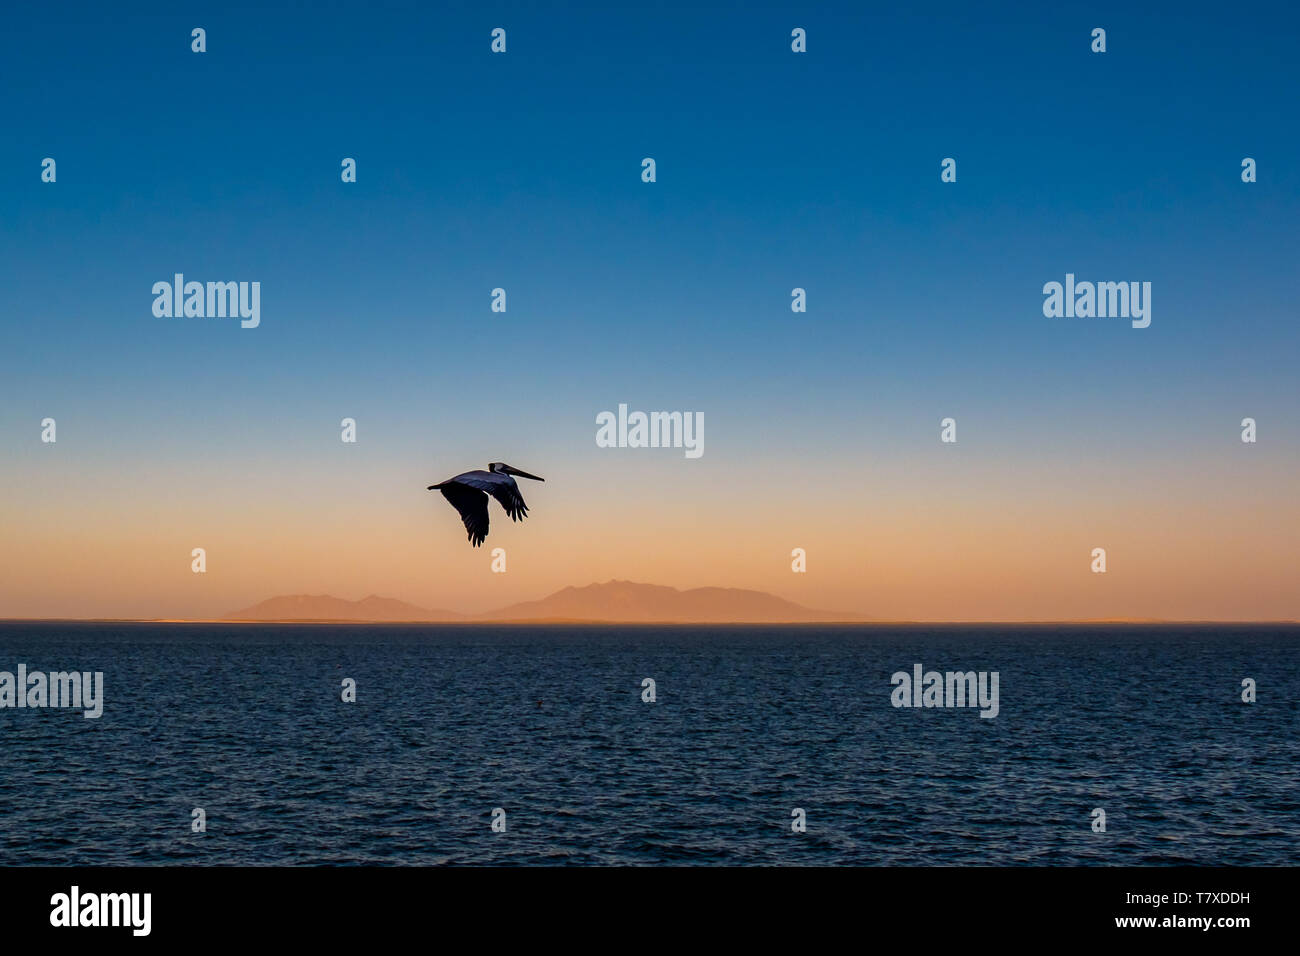 Brown pelican (Pelecanus occidentalis) in flight over the Pacific Ocean with mountains in haze at sunrise near Baja Californa Sur, Mexico. Stock Photo